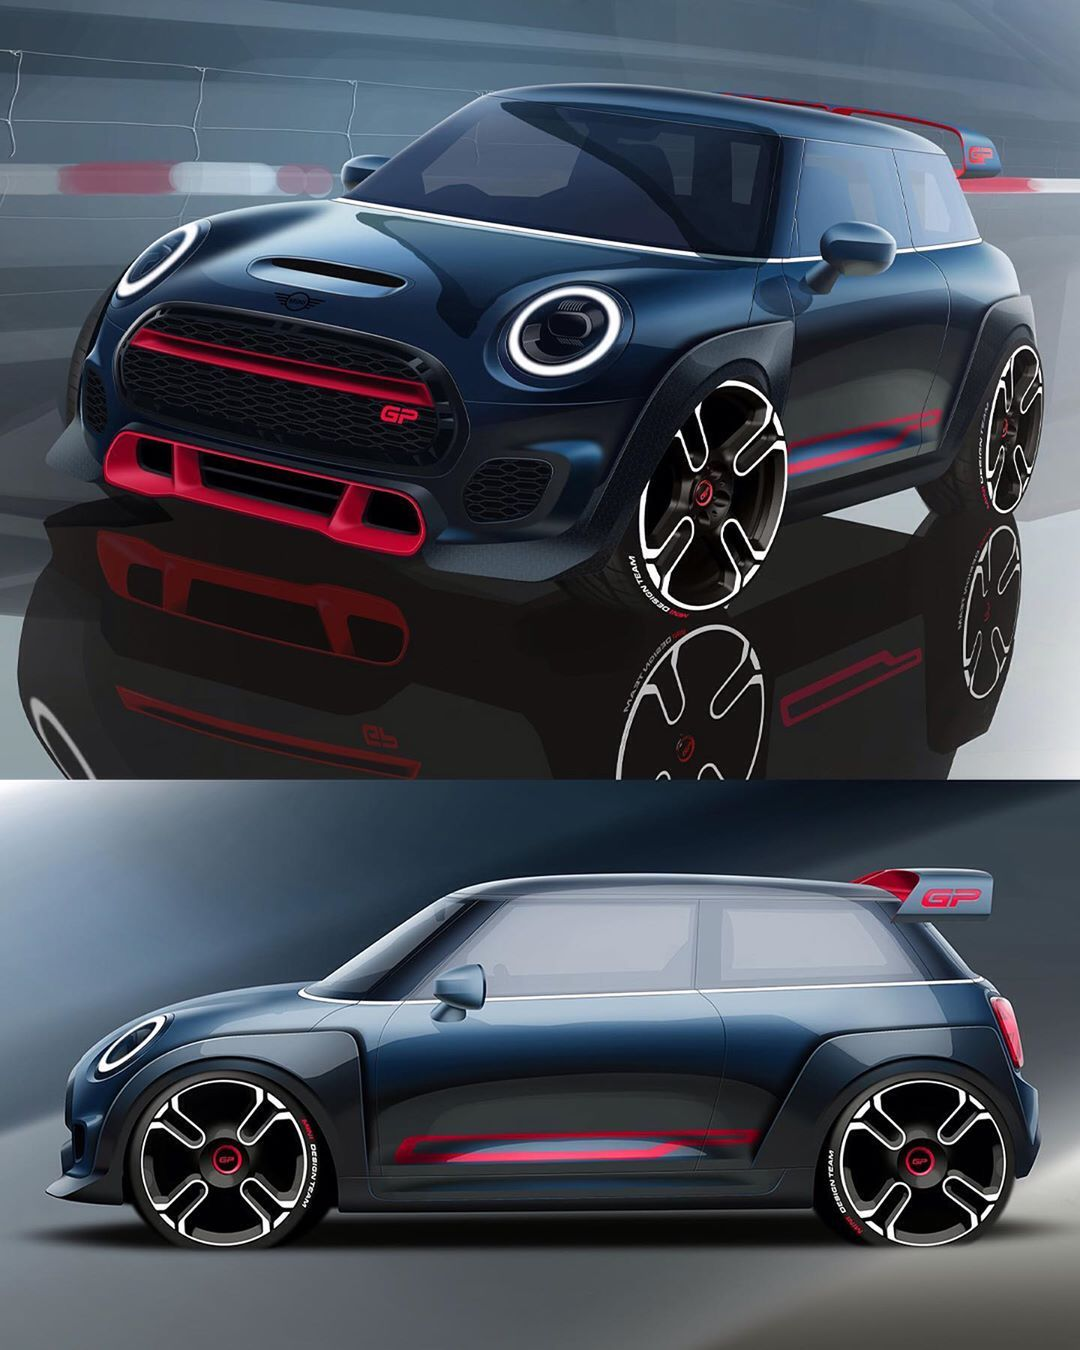 "Car Design World on Instagram: ""2020 MINI John Cooper Works GP official sketches Exterior sketches: Niels Stienhoff #cardesign #car #design #carsketch #sketch #minicooper…"" #conceptcars"